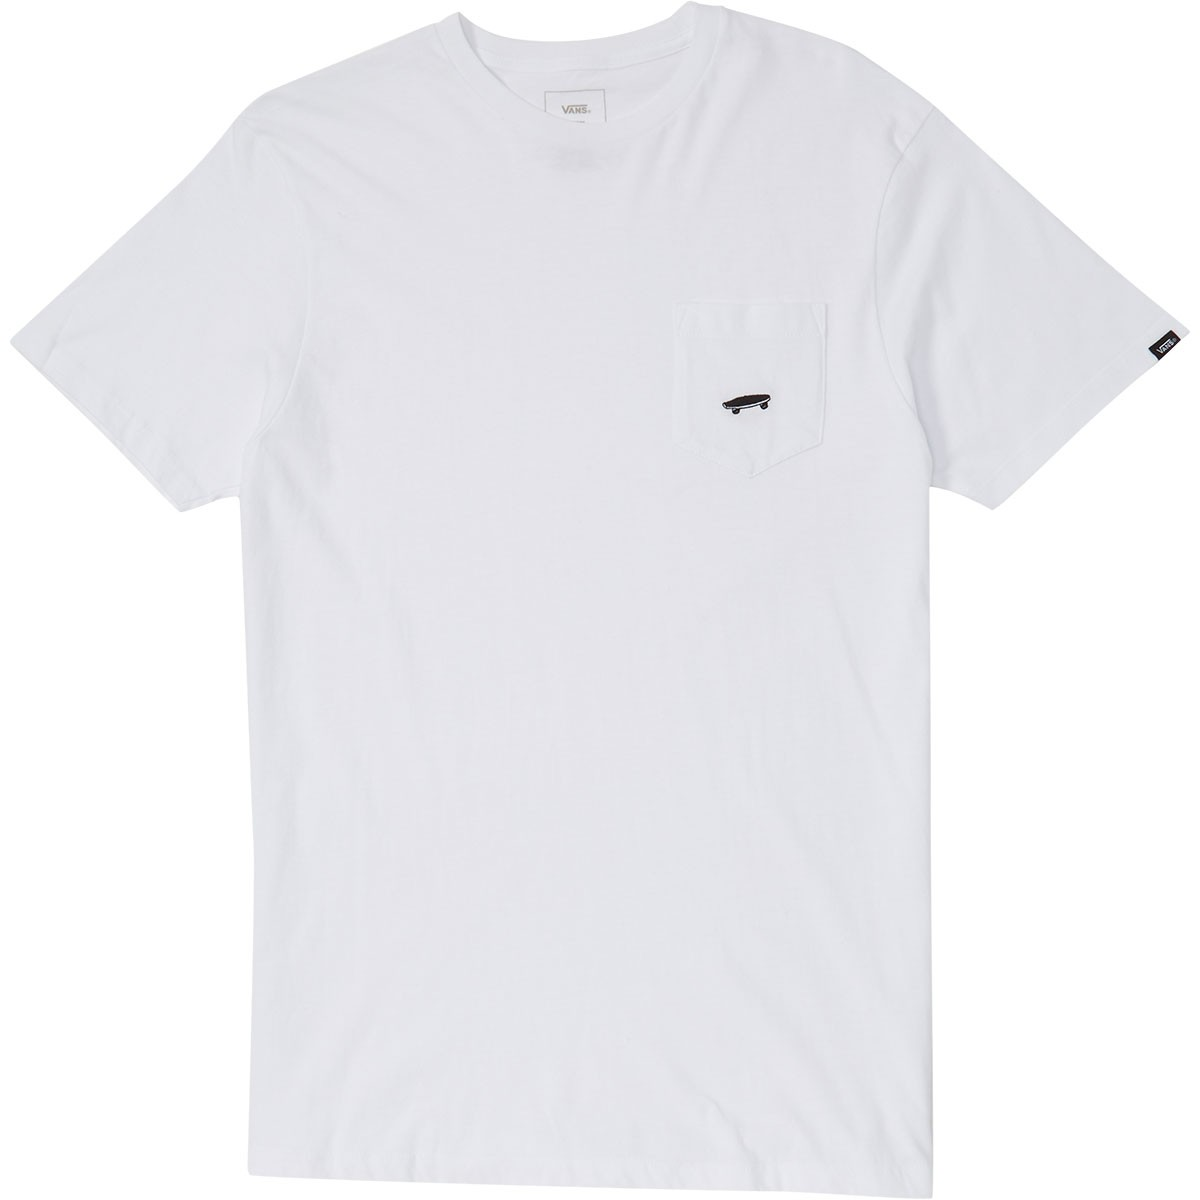 Vans everyday pocket tee ii t shirt white for How to whiten shirts